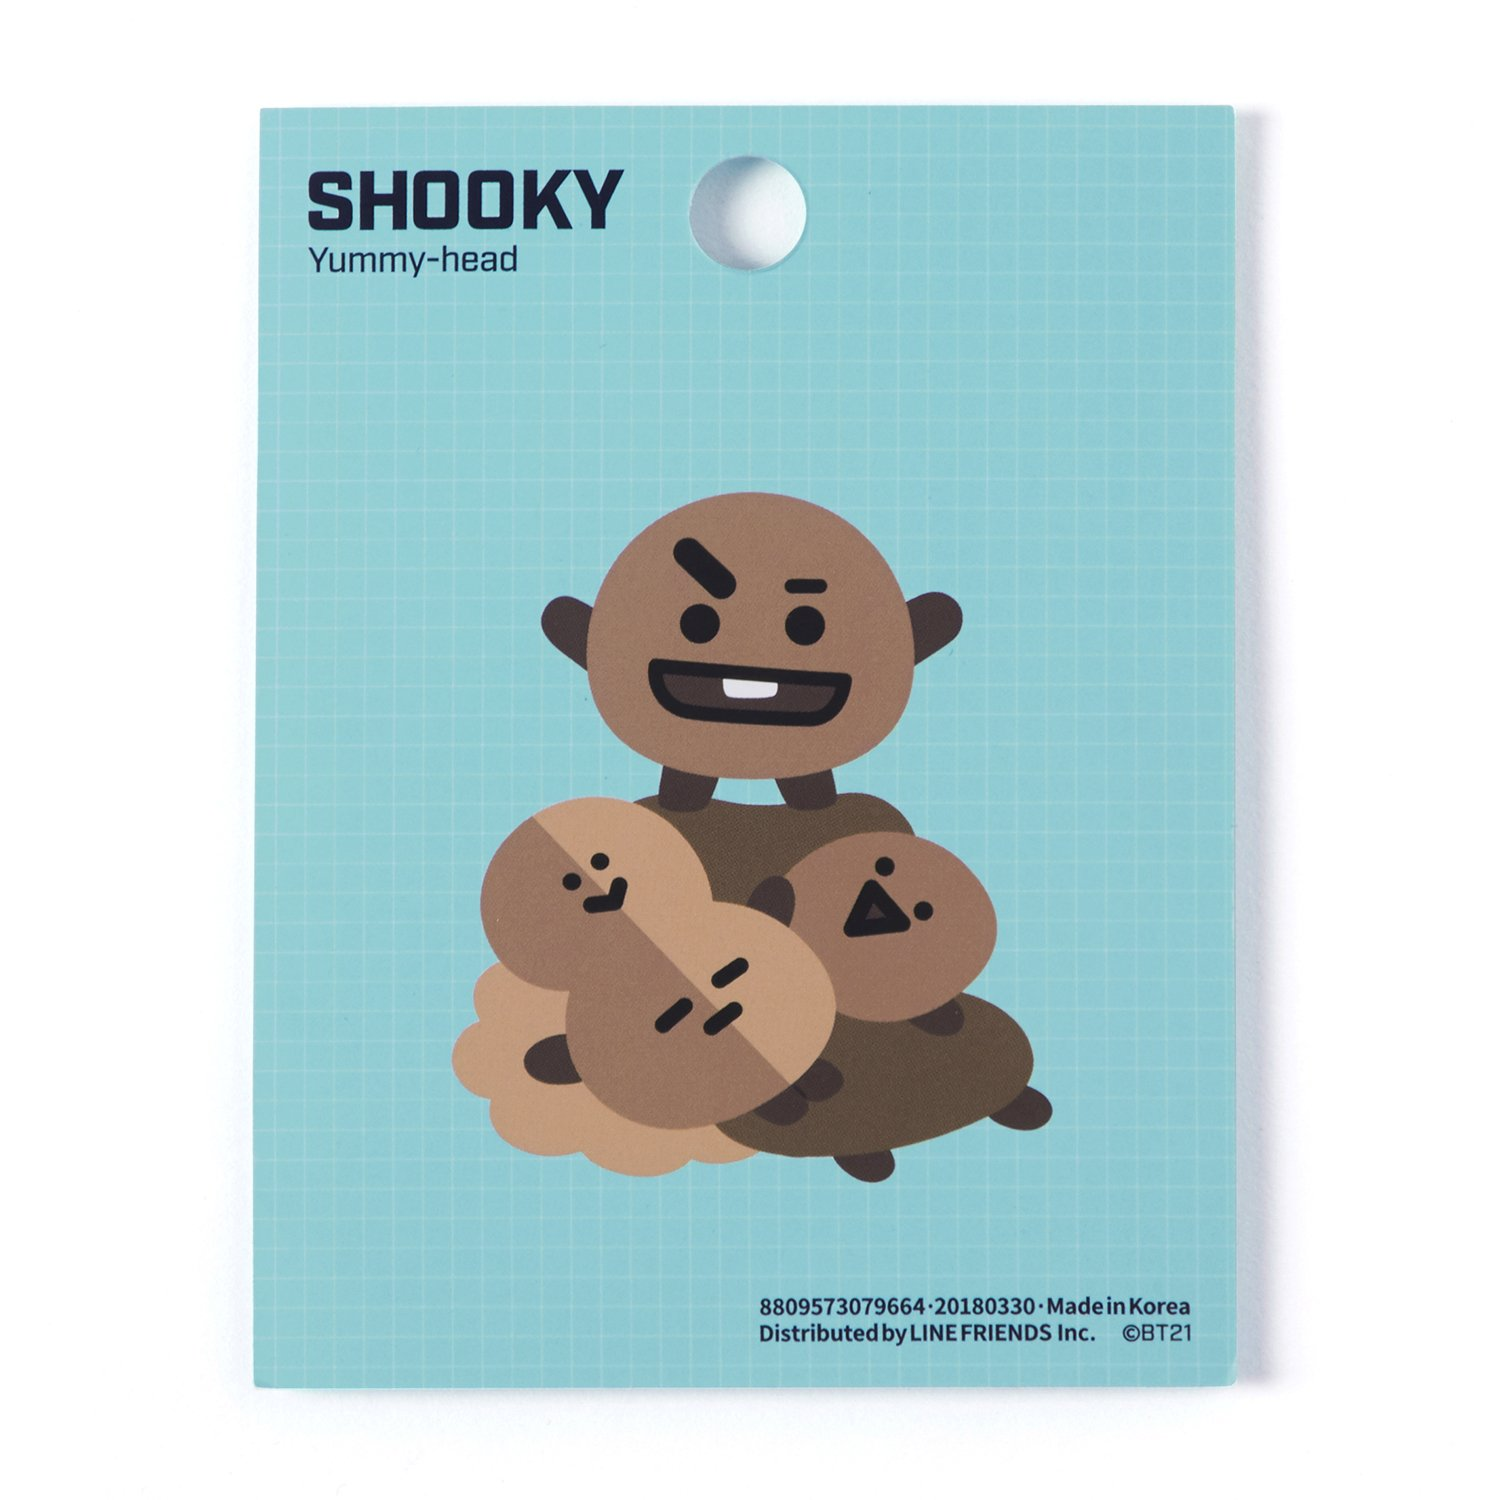 5f91dc899005e BT21 Official Merchandise by Line Friends - SHOOKIE Character Cute 3pc  Office Supplies Set with File Folder, Sticky Note, and Mouse Pad